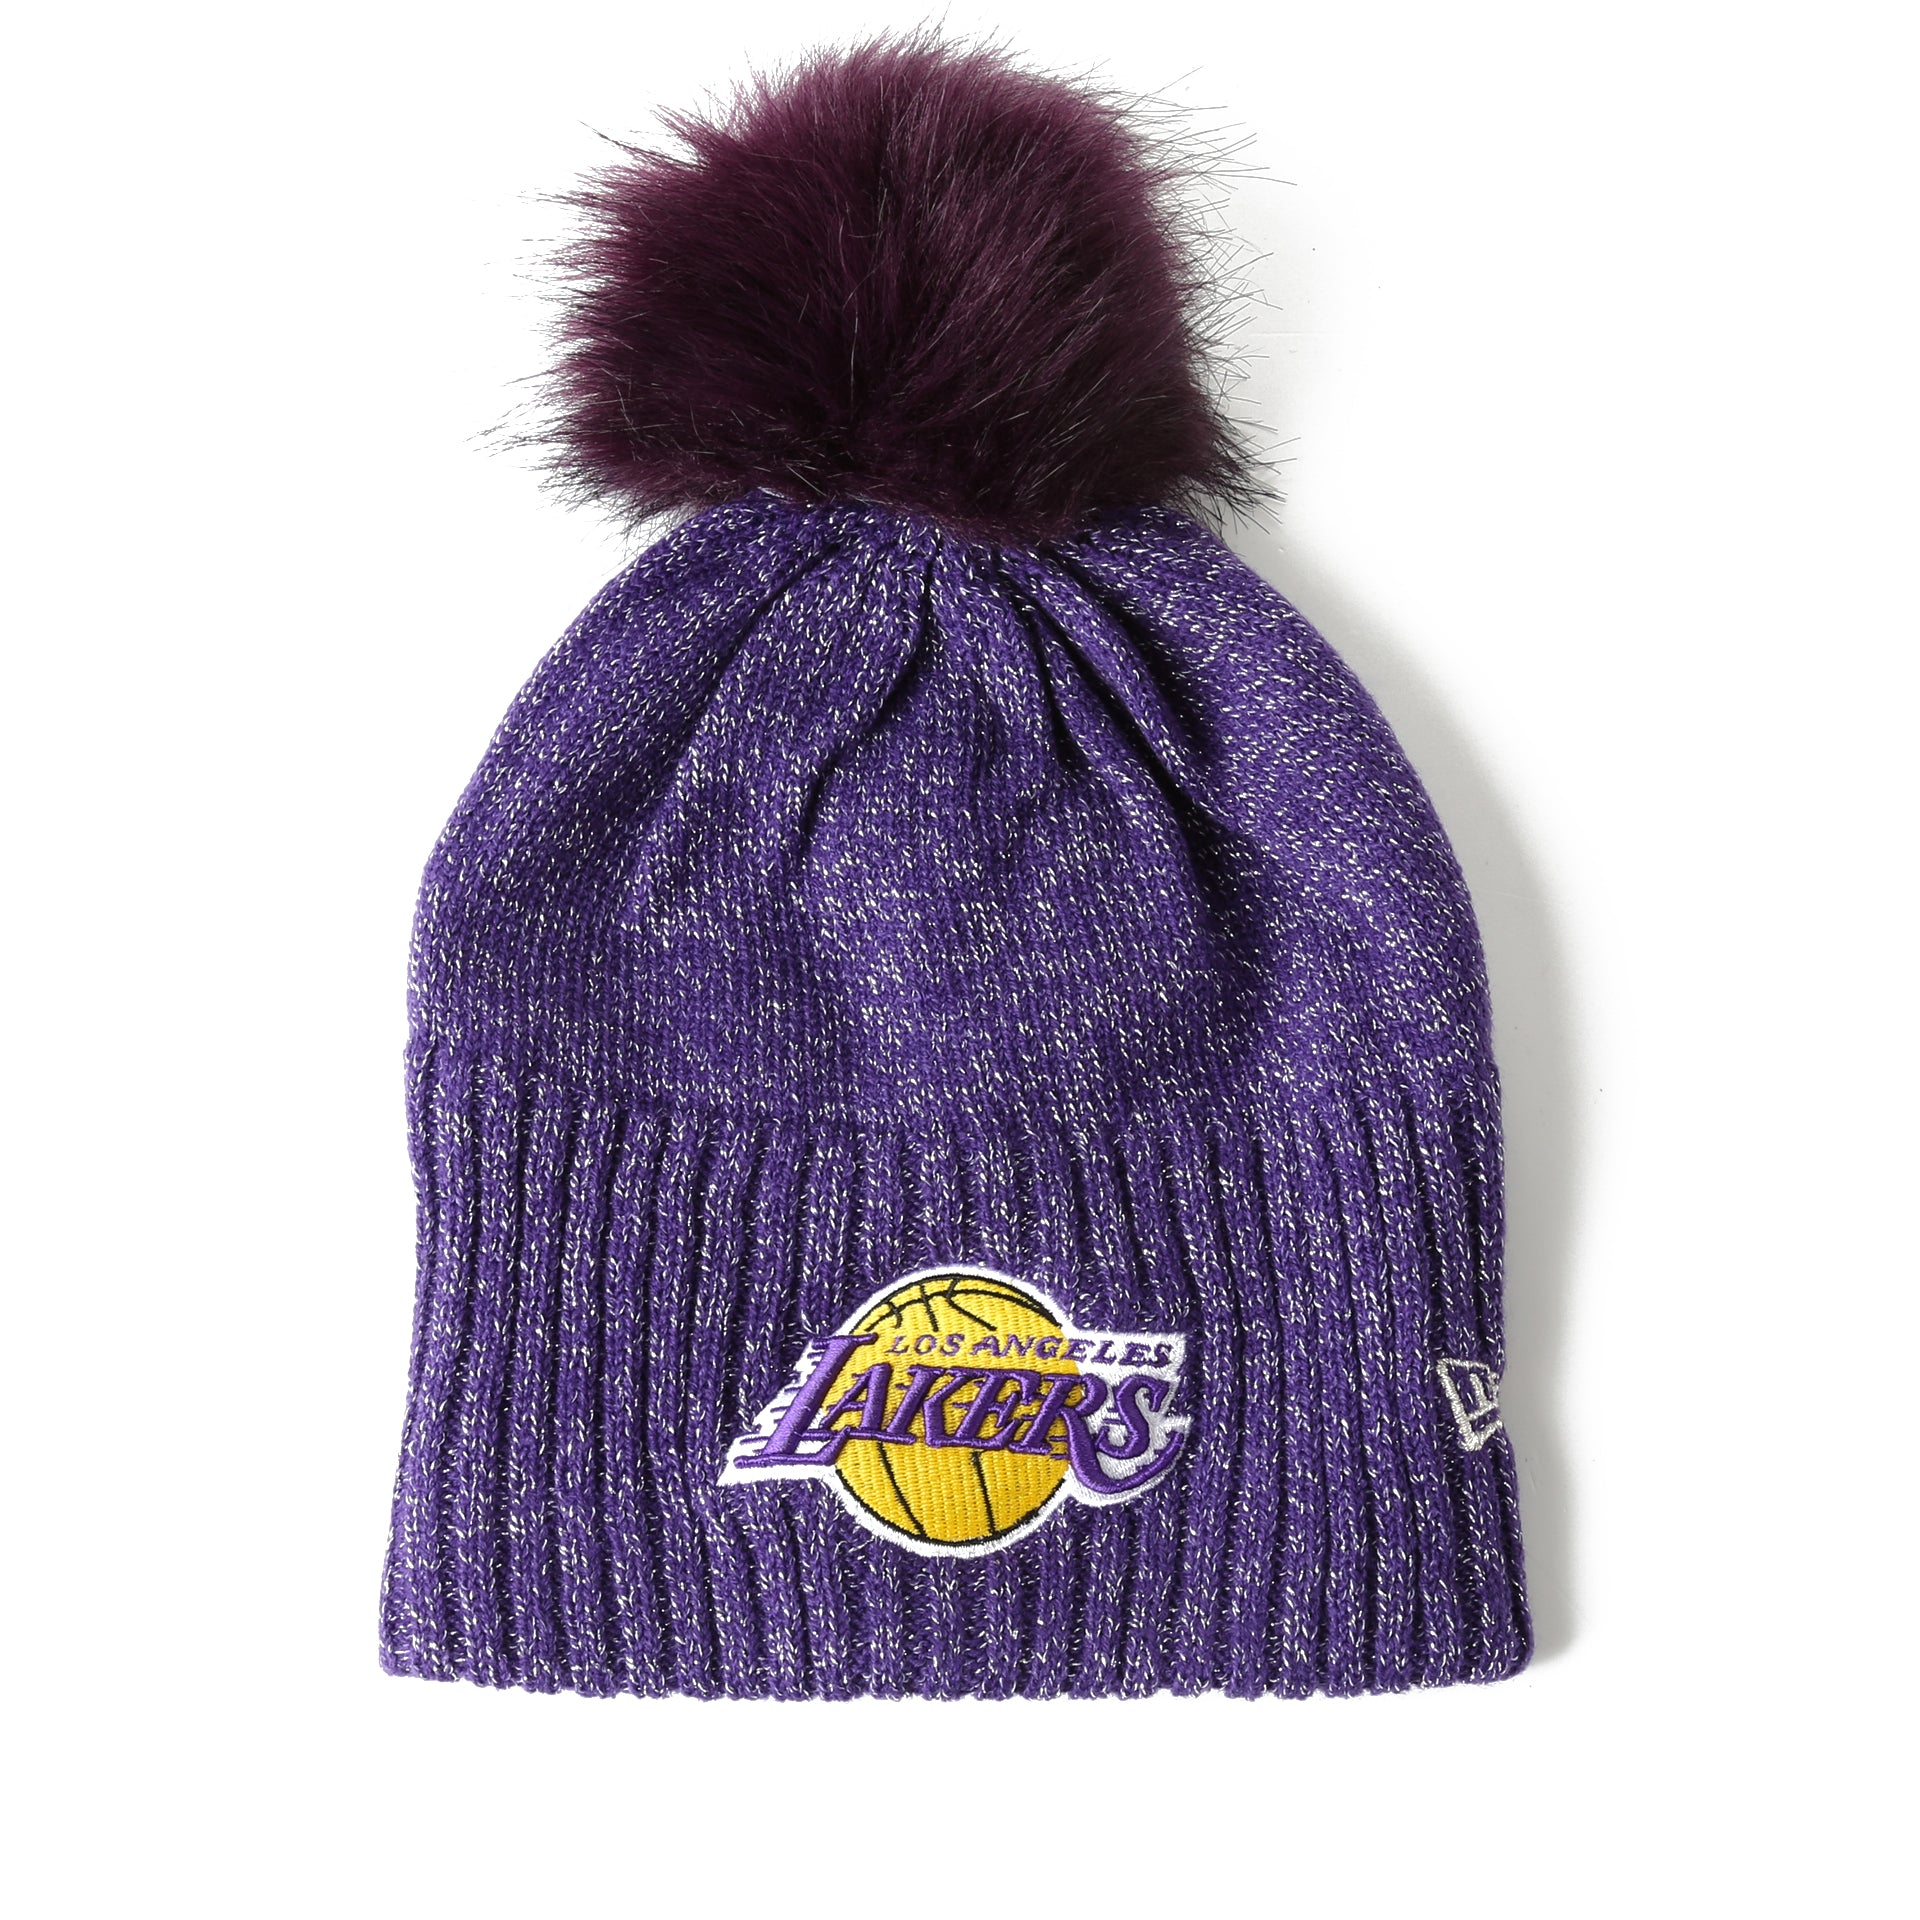 New Era Women s Dazzle Knit Beanie - Los Angeles Lakers Purple - New ... 29eab918d9f